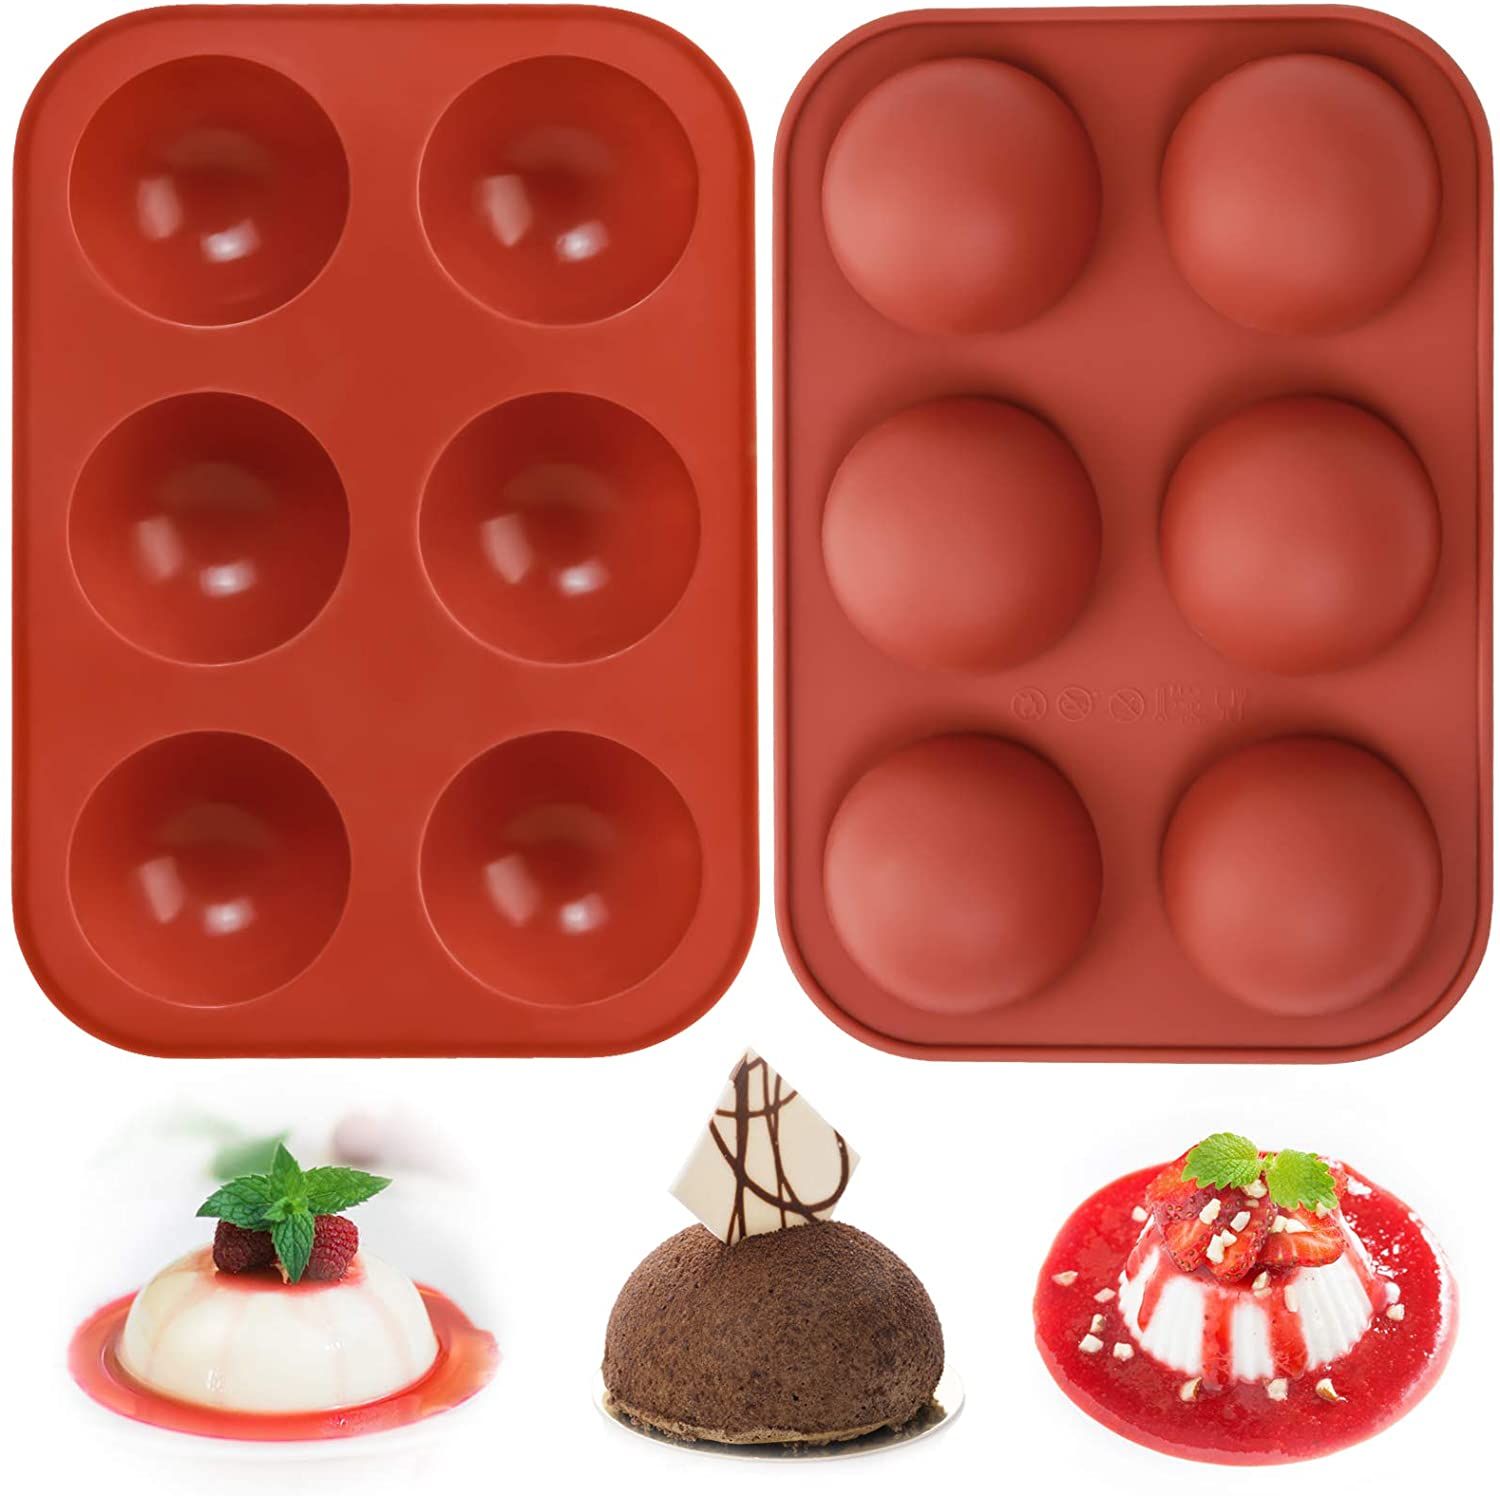 Amazon: Hot Chocolate Bomb Mold, Valentine's Day Chocolate Mold Candy Mold, 2 Pack, Just $5.49 (Reg $10.99 ) after code!